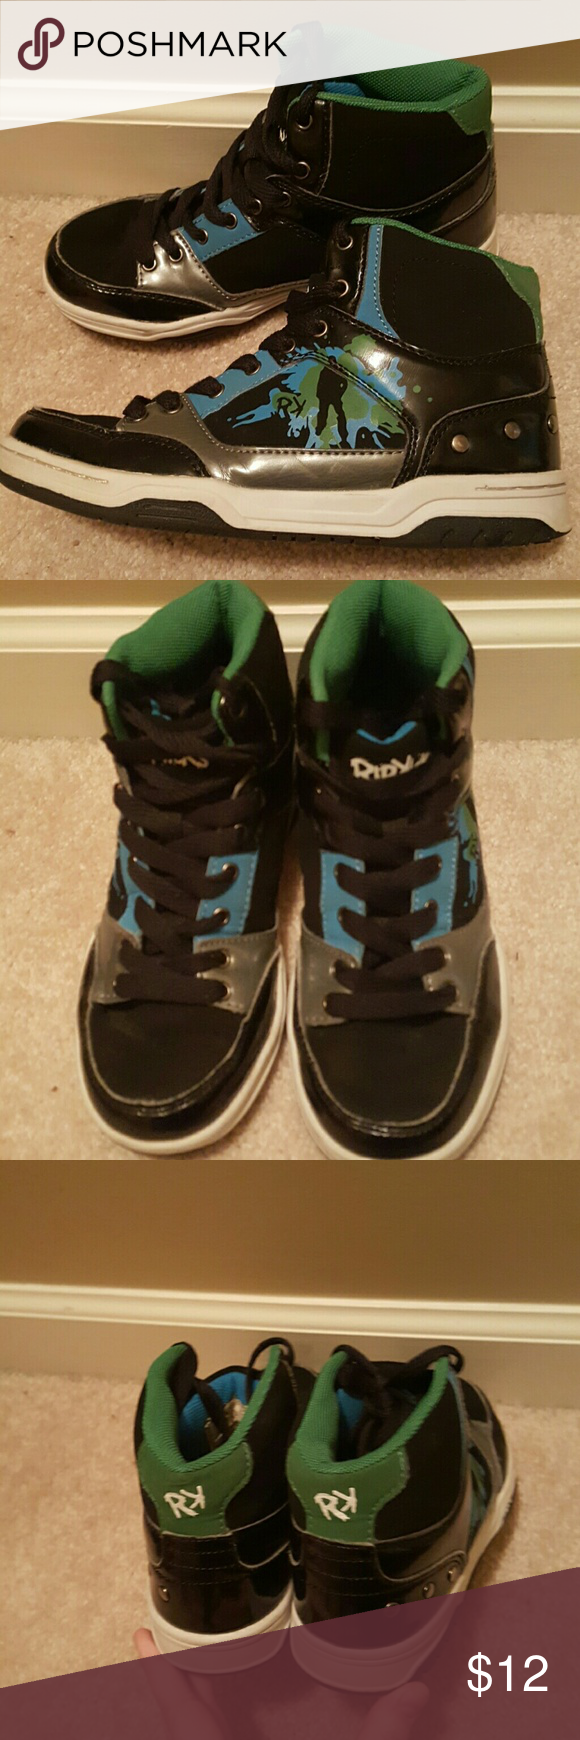 Rip Kick Brand Black & Paint Splatter Sneakers Size 2 Big boy's Rip Kick Brand Sneakers. Black, Gray, Blue, and Green. Material has suede like feel and Shiny Patent Leather like look. Purchased brand new for my son, who has outgrown them. Only a few small scuffs around toes as pictured in Picture 6. Could probably be covered with shoe polish or permanent marker. Very little wear on soles. Insoles and laces in tact. Just now truly broken in. Would make great pair of extra shoes for basketball…